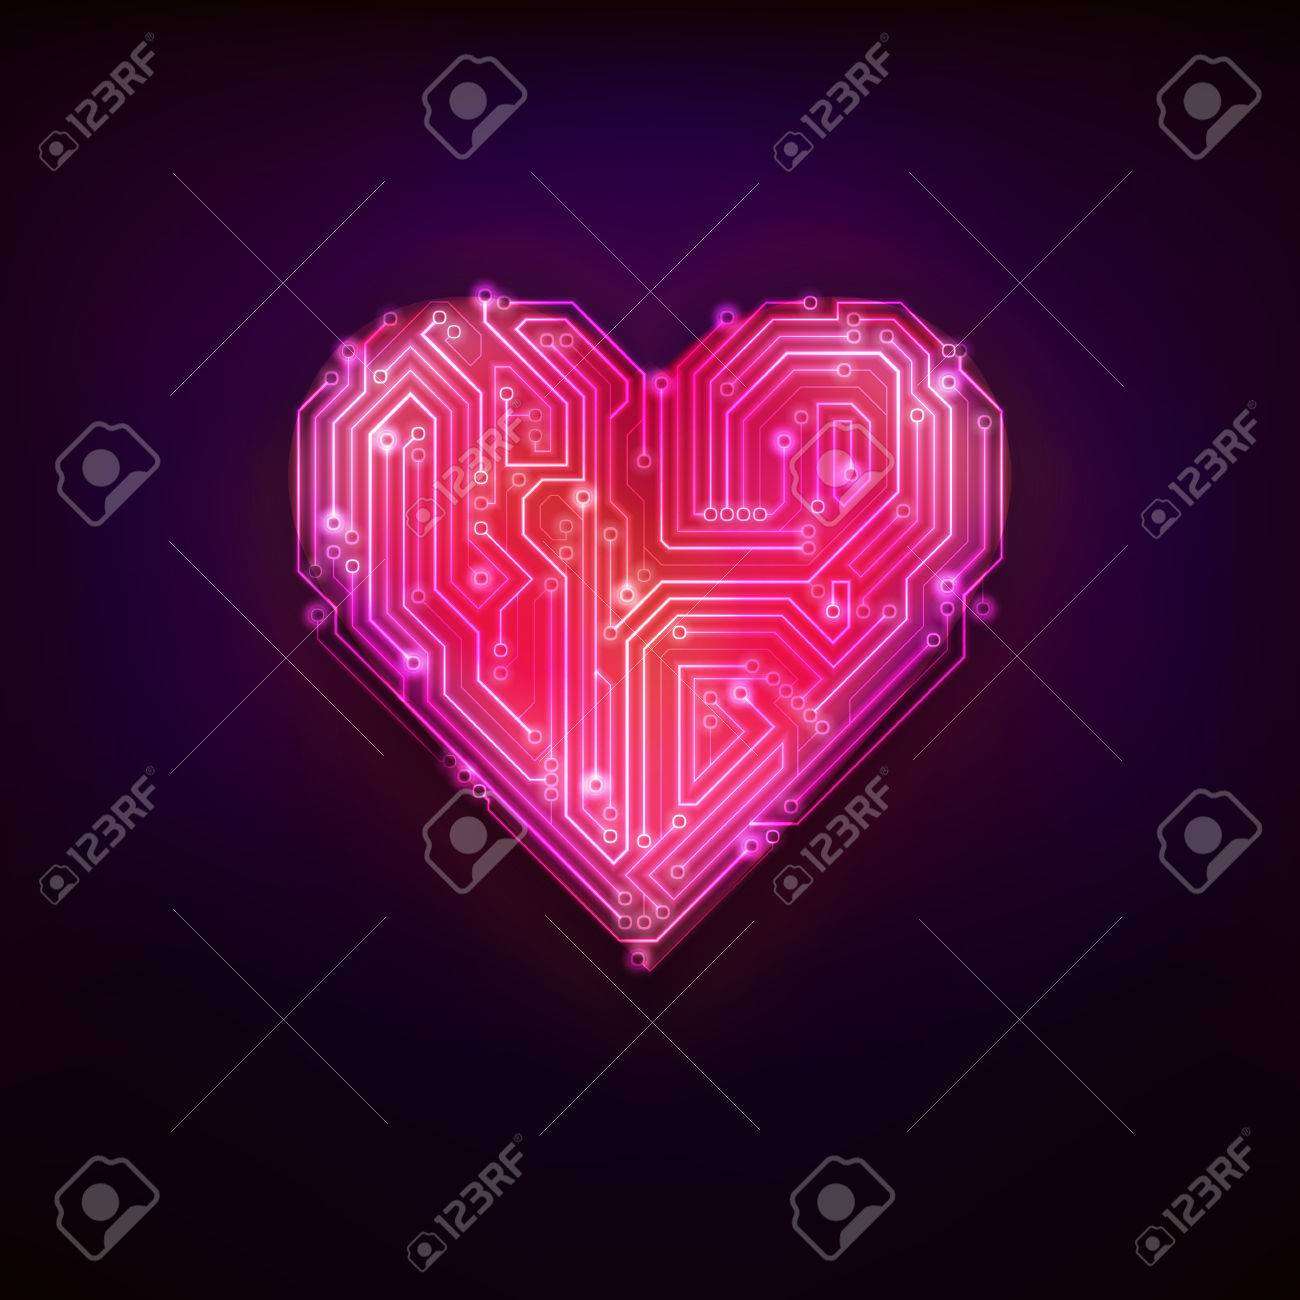 Red Tech Structure Design As Love And Heart Symbol Modern Graphic Printed Electrical Circuit Board Vector Isolated Illustration On Black